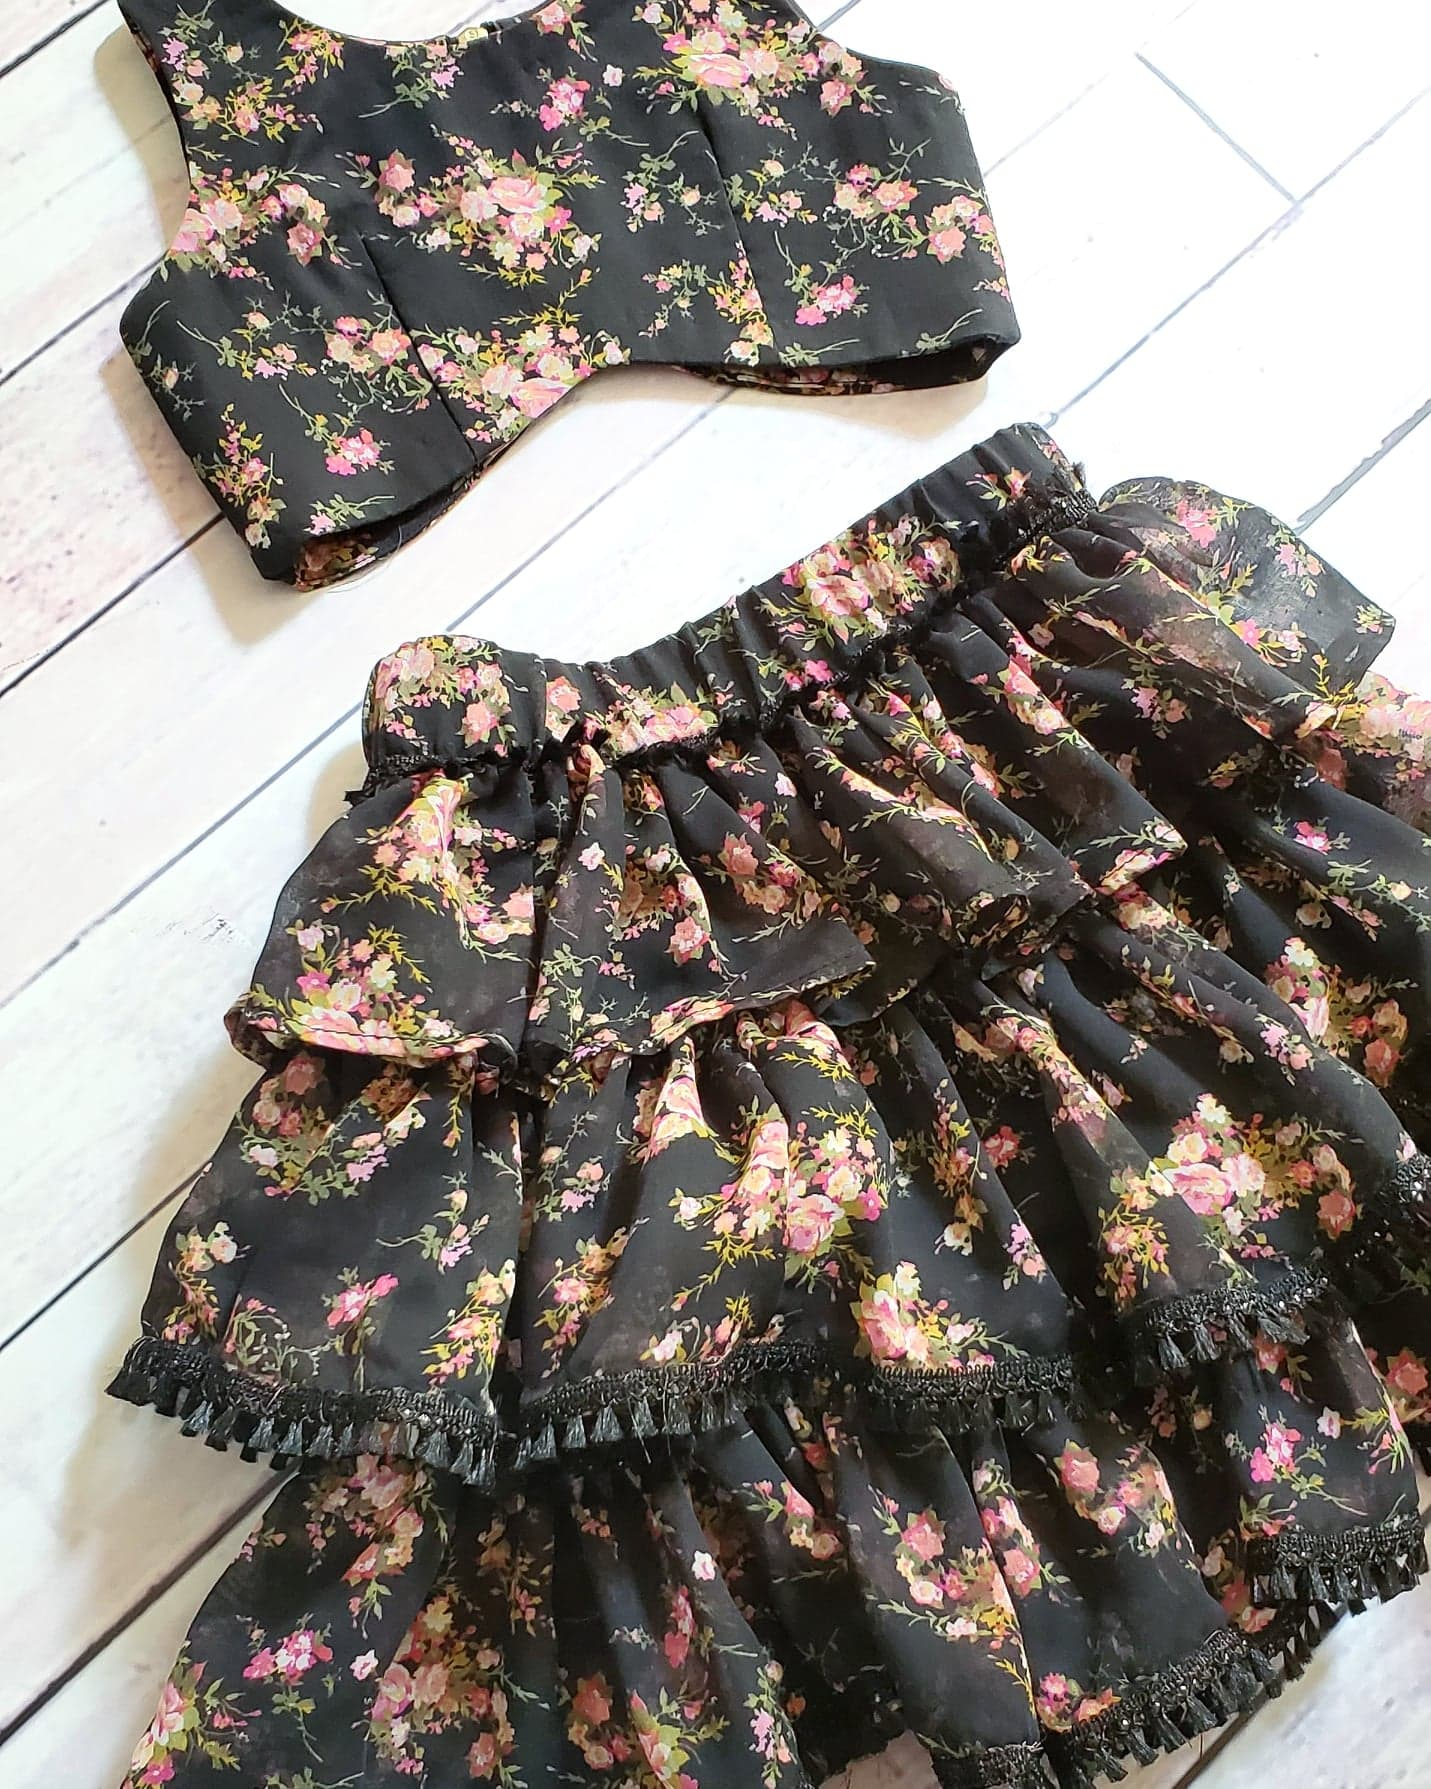 Senorita Black Floret Skirt